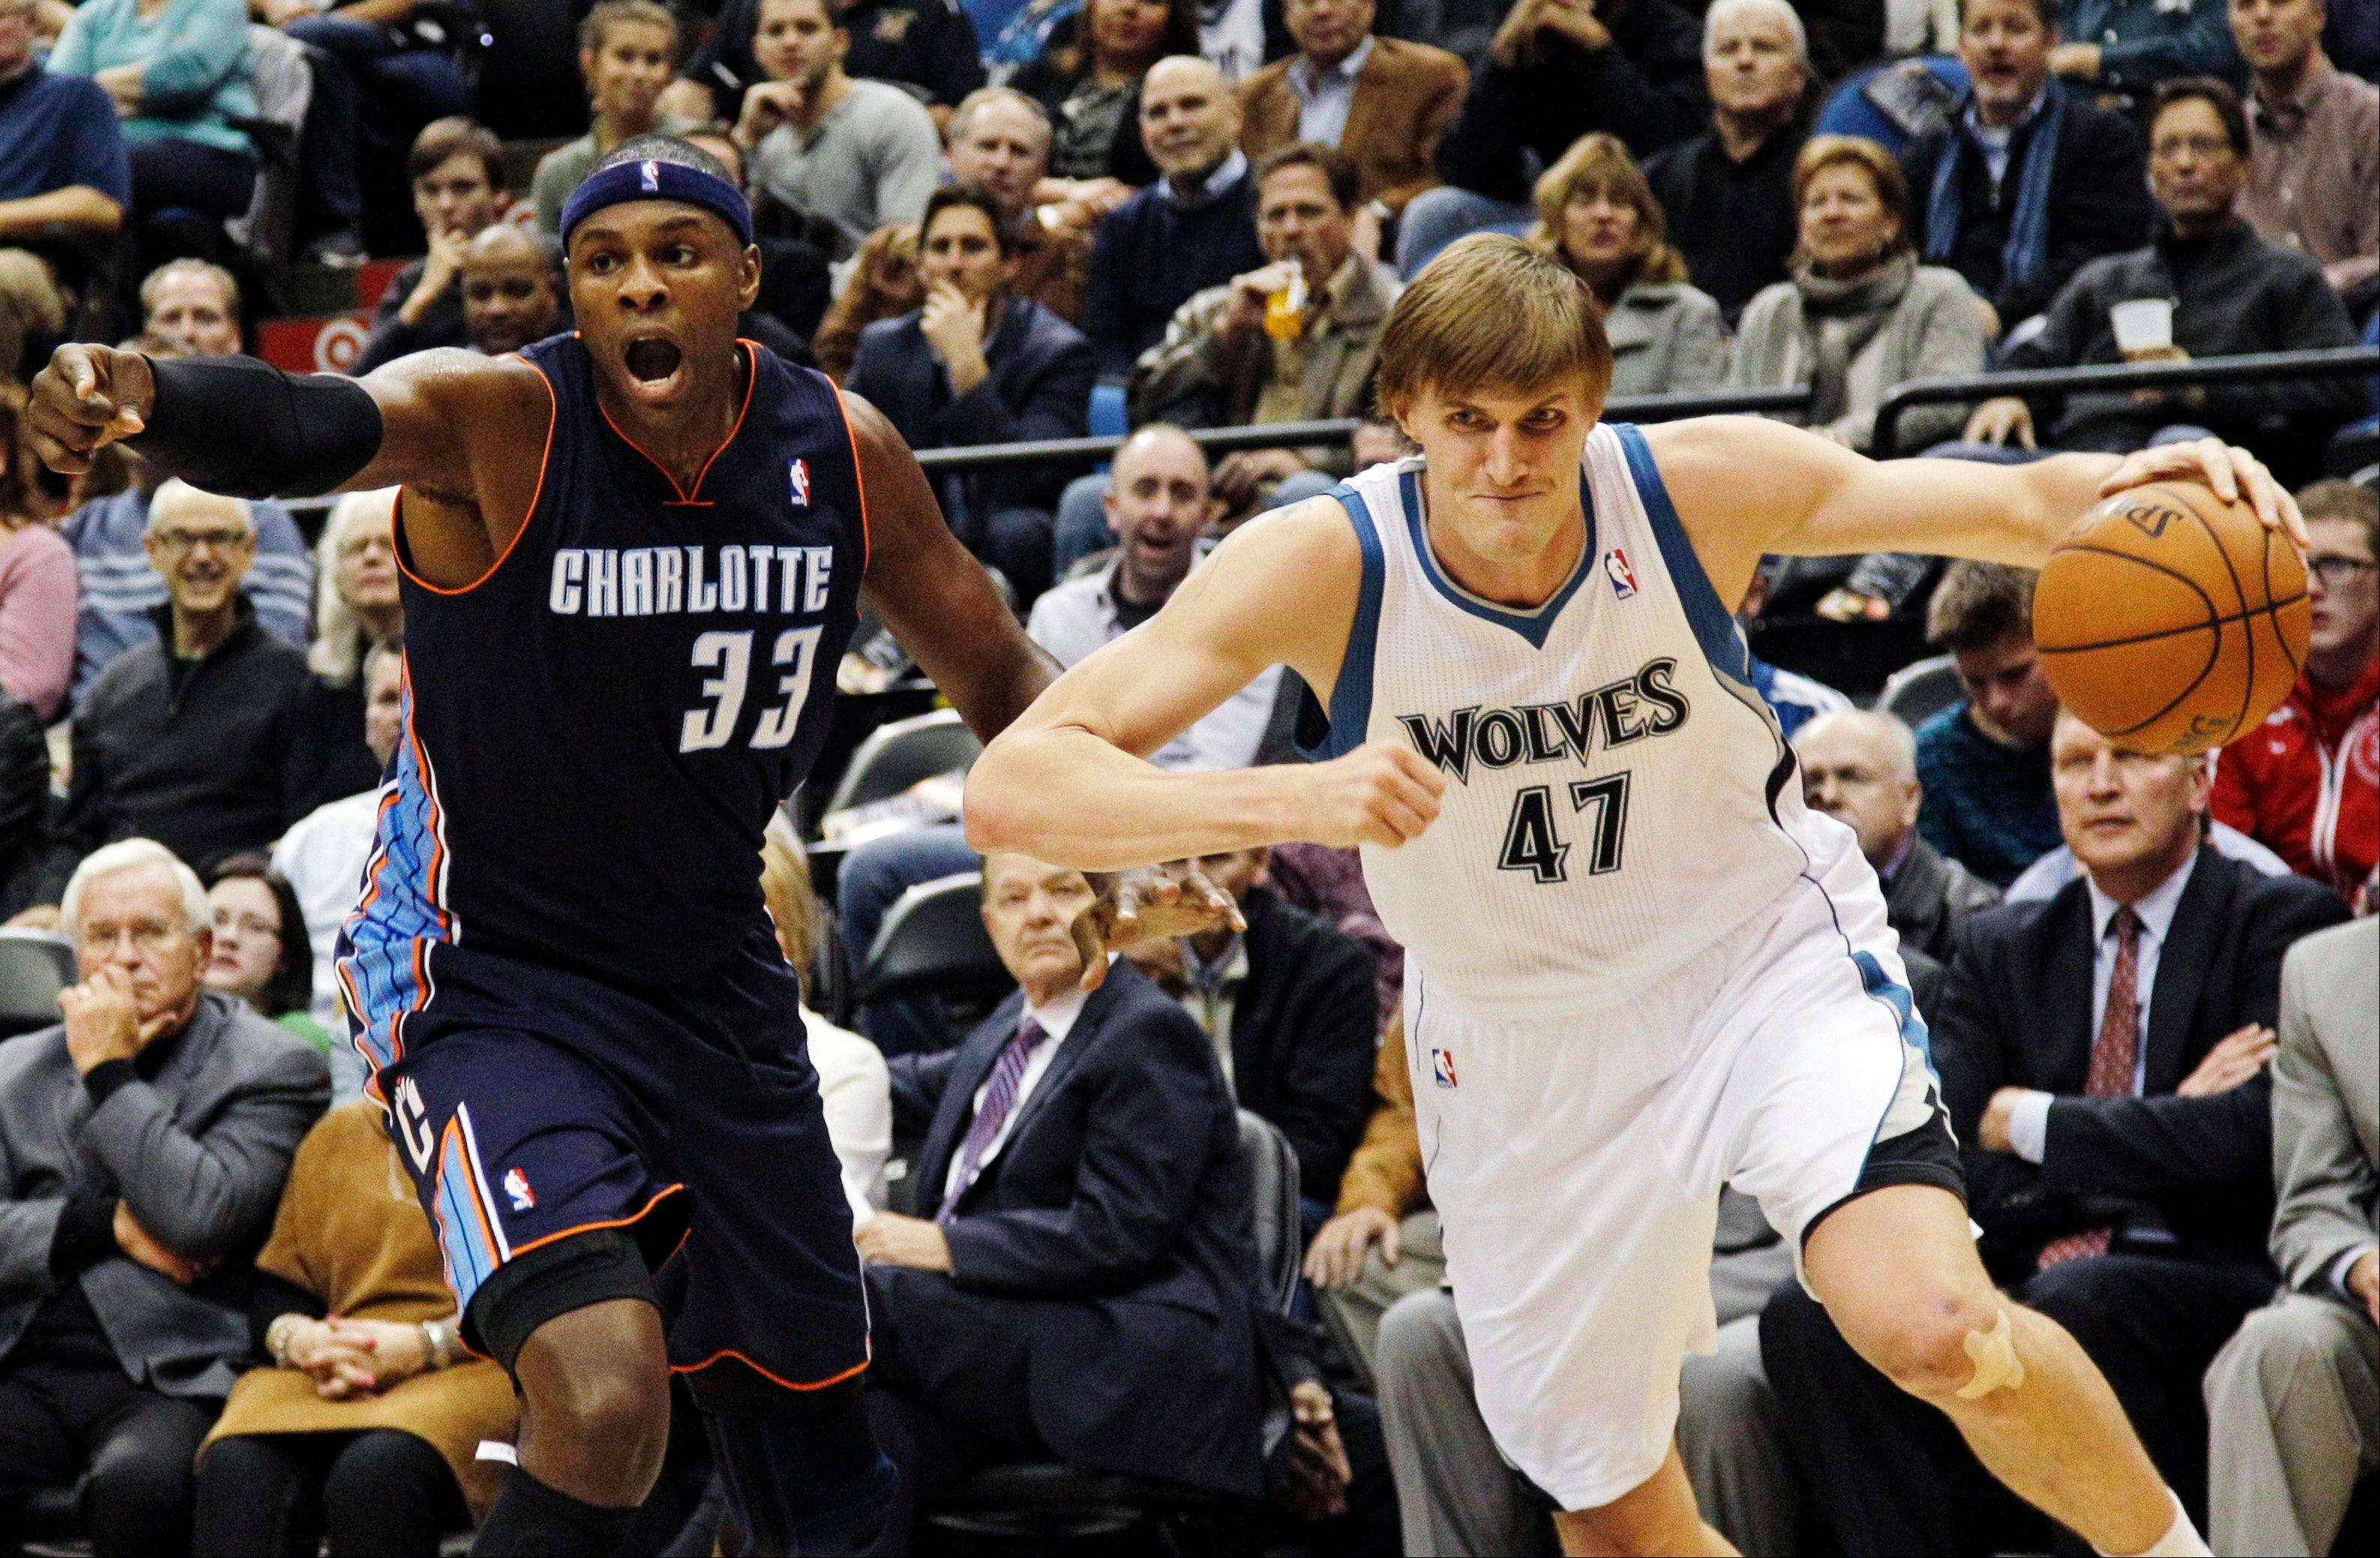 The Minnesota Timberwolves� Andrei Kirilenko drives on the Charlotte Bobcats� Brendan Haywood Wednesday during the first half in Minneapolis.